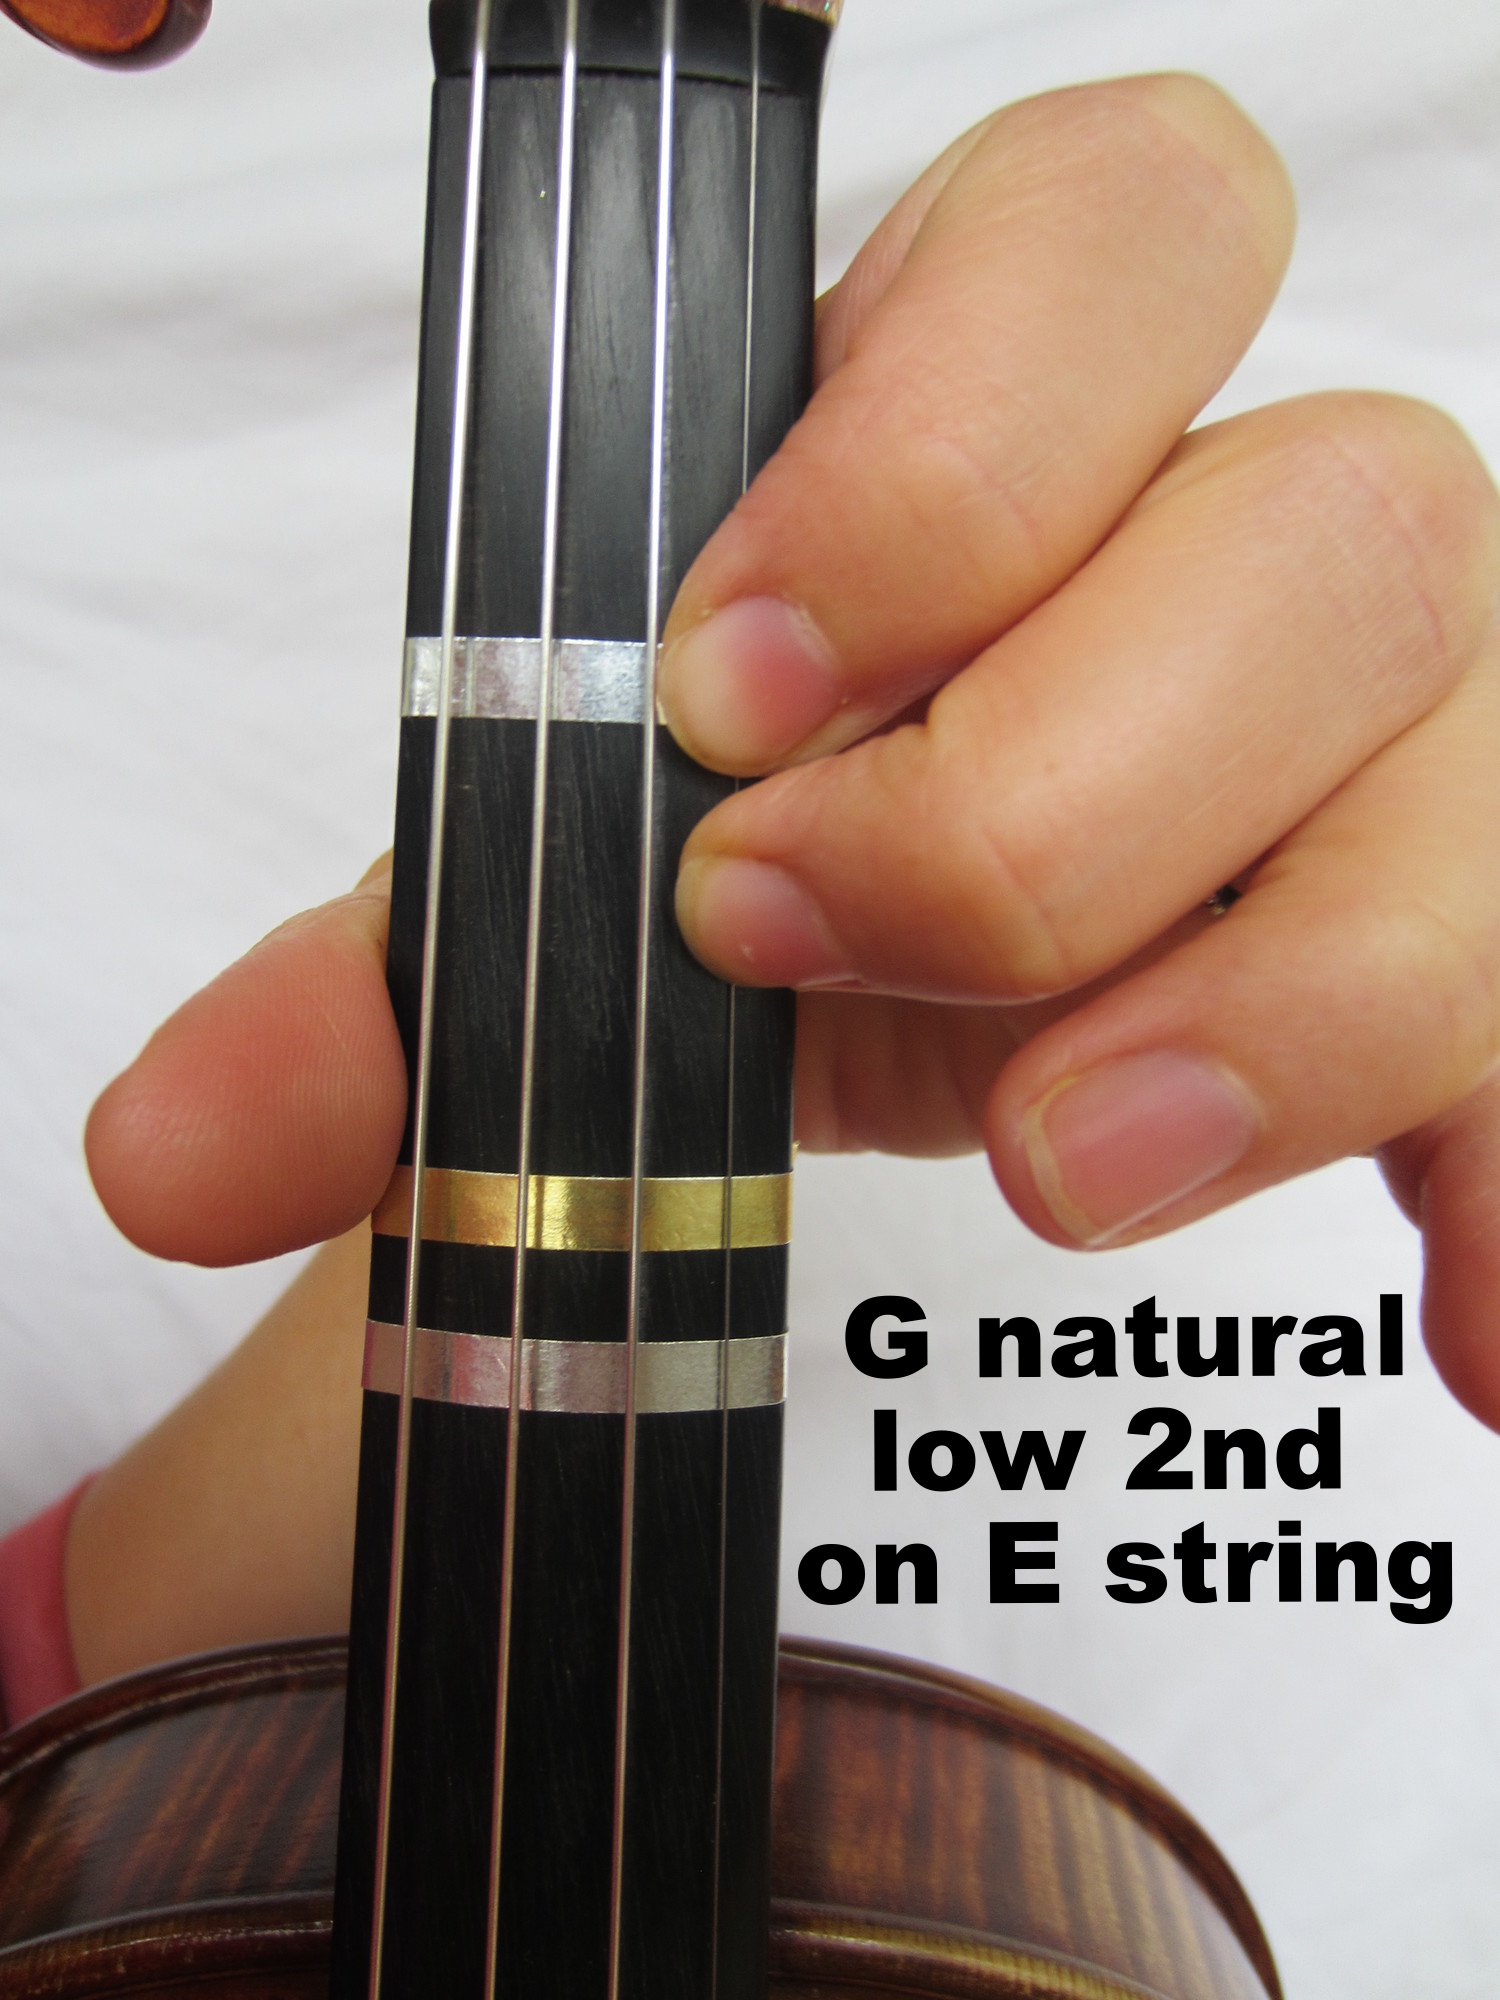 Violin Fingering Gnatural on E.JPG